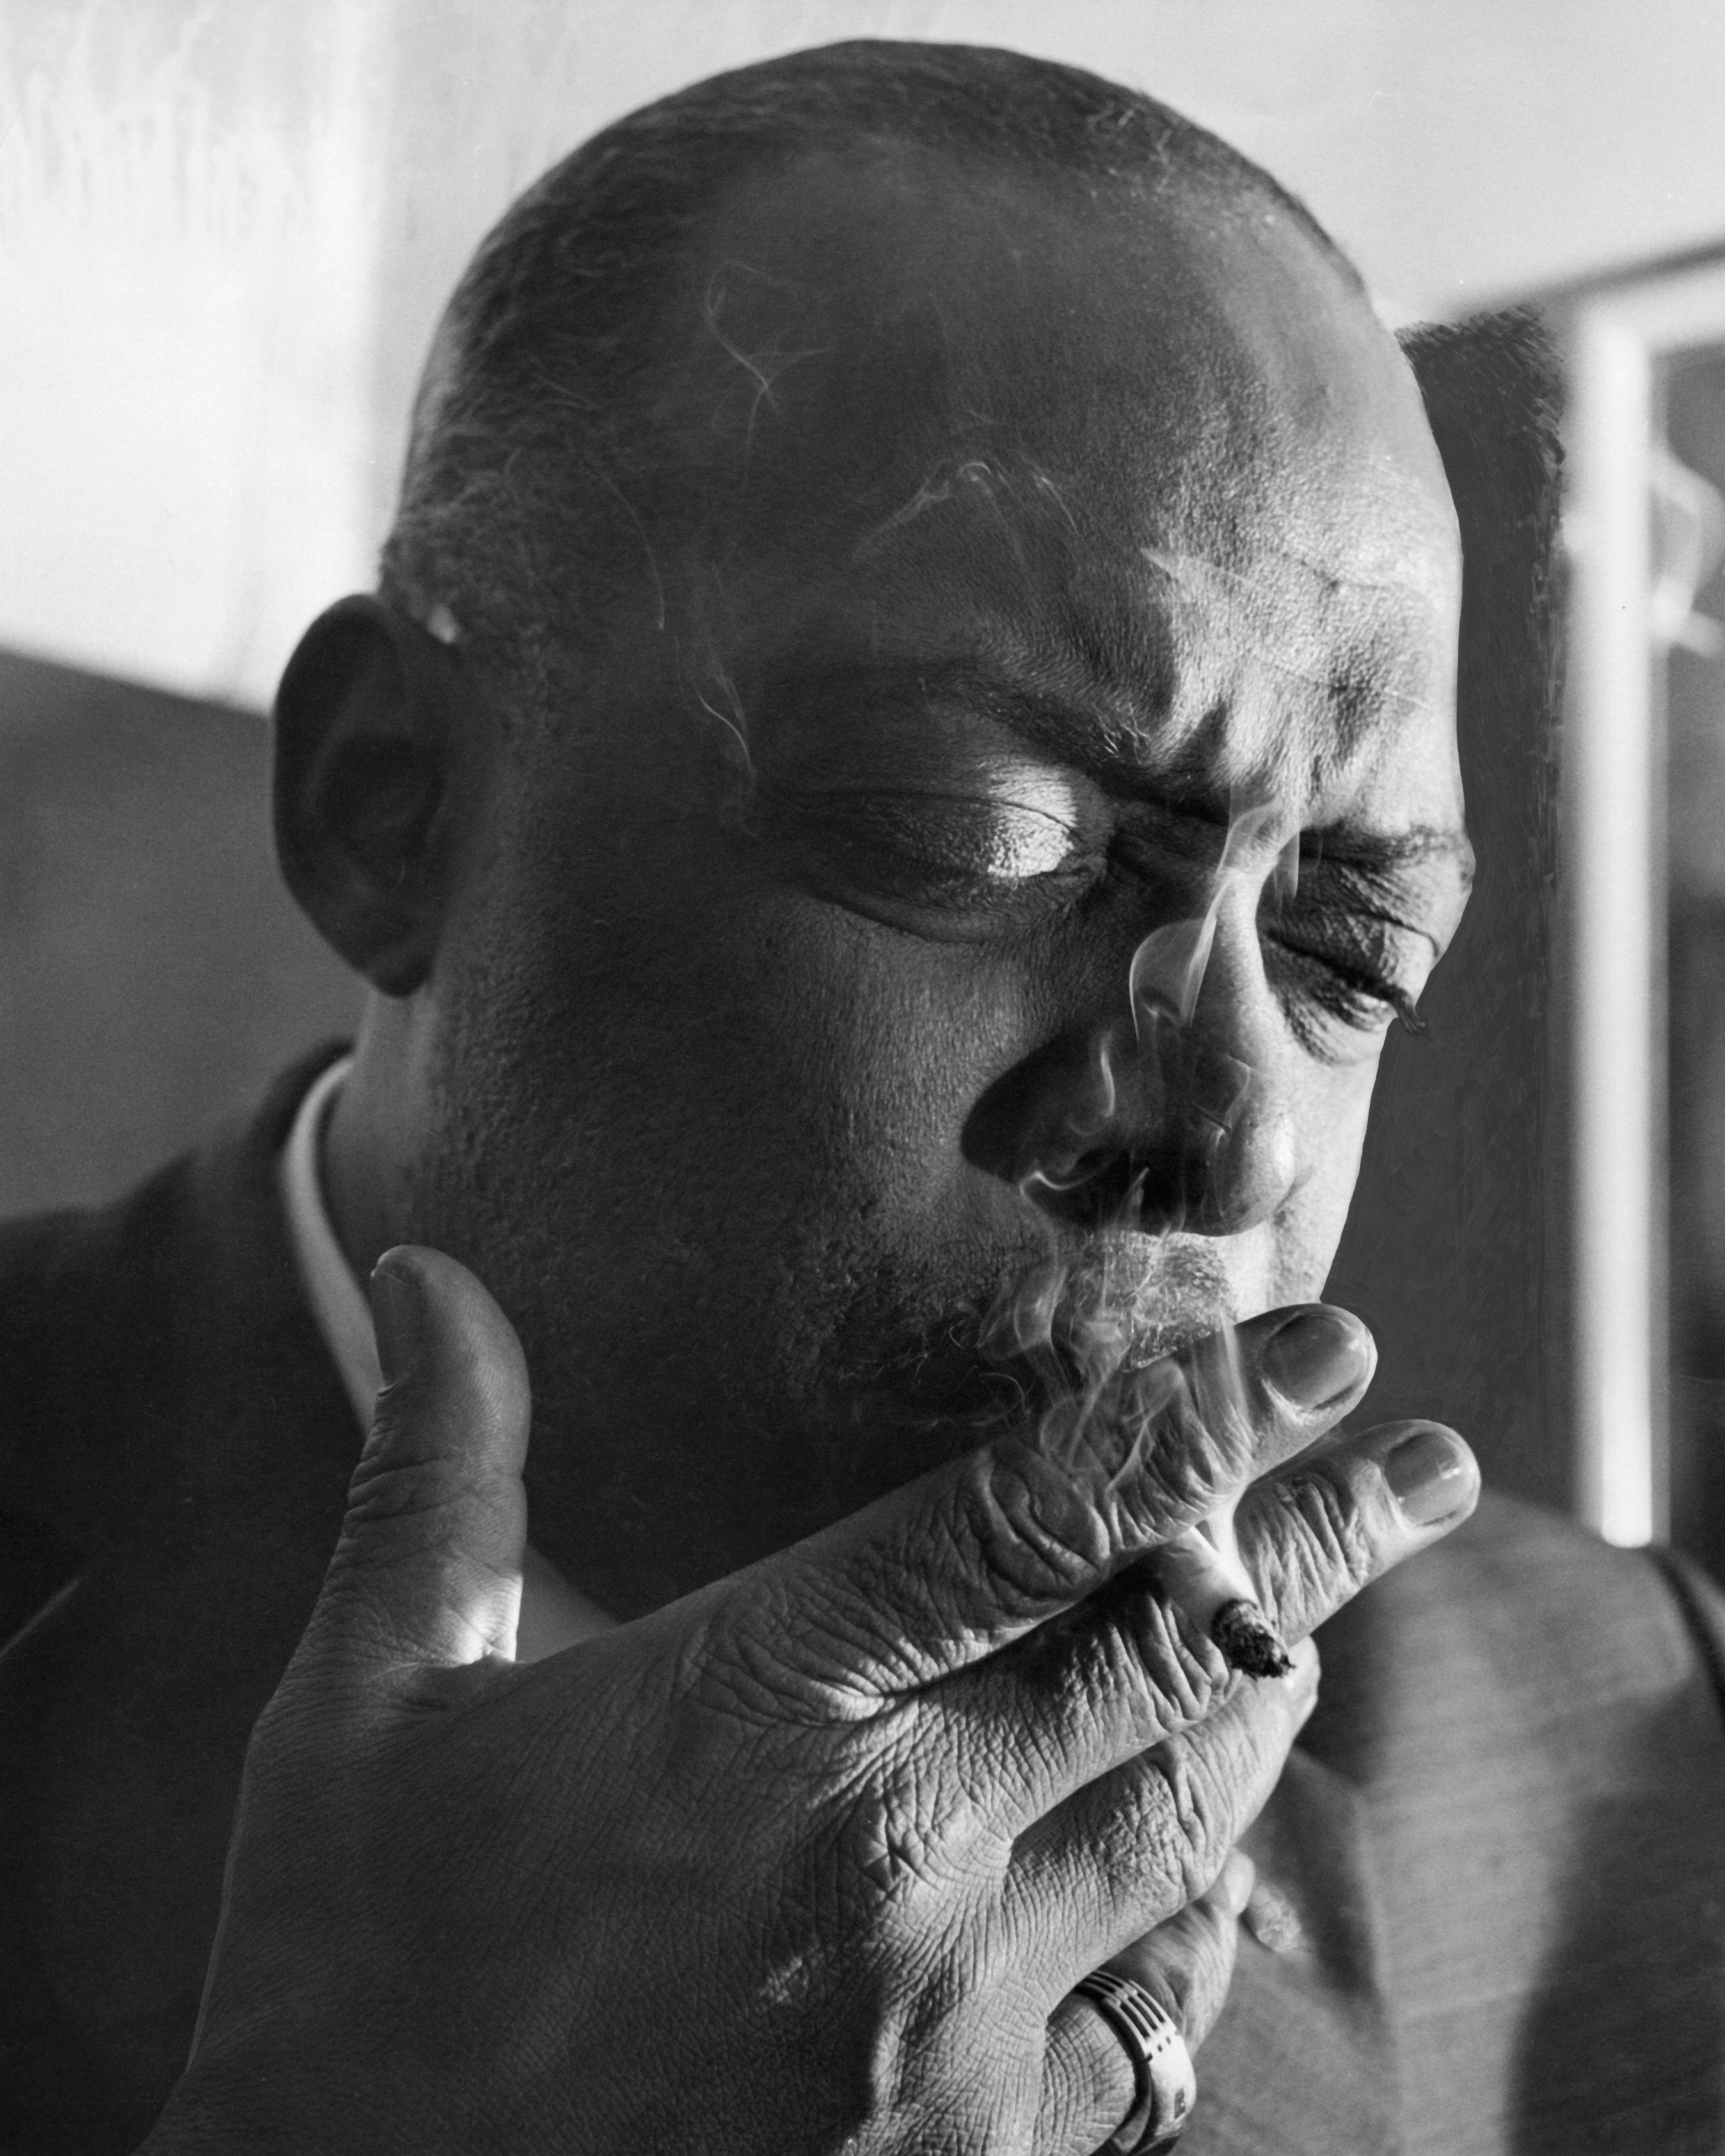 Observer archive: Count Basie, 15 February 1959